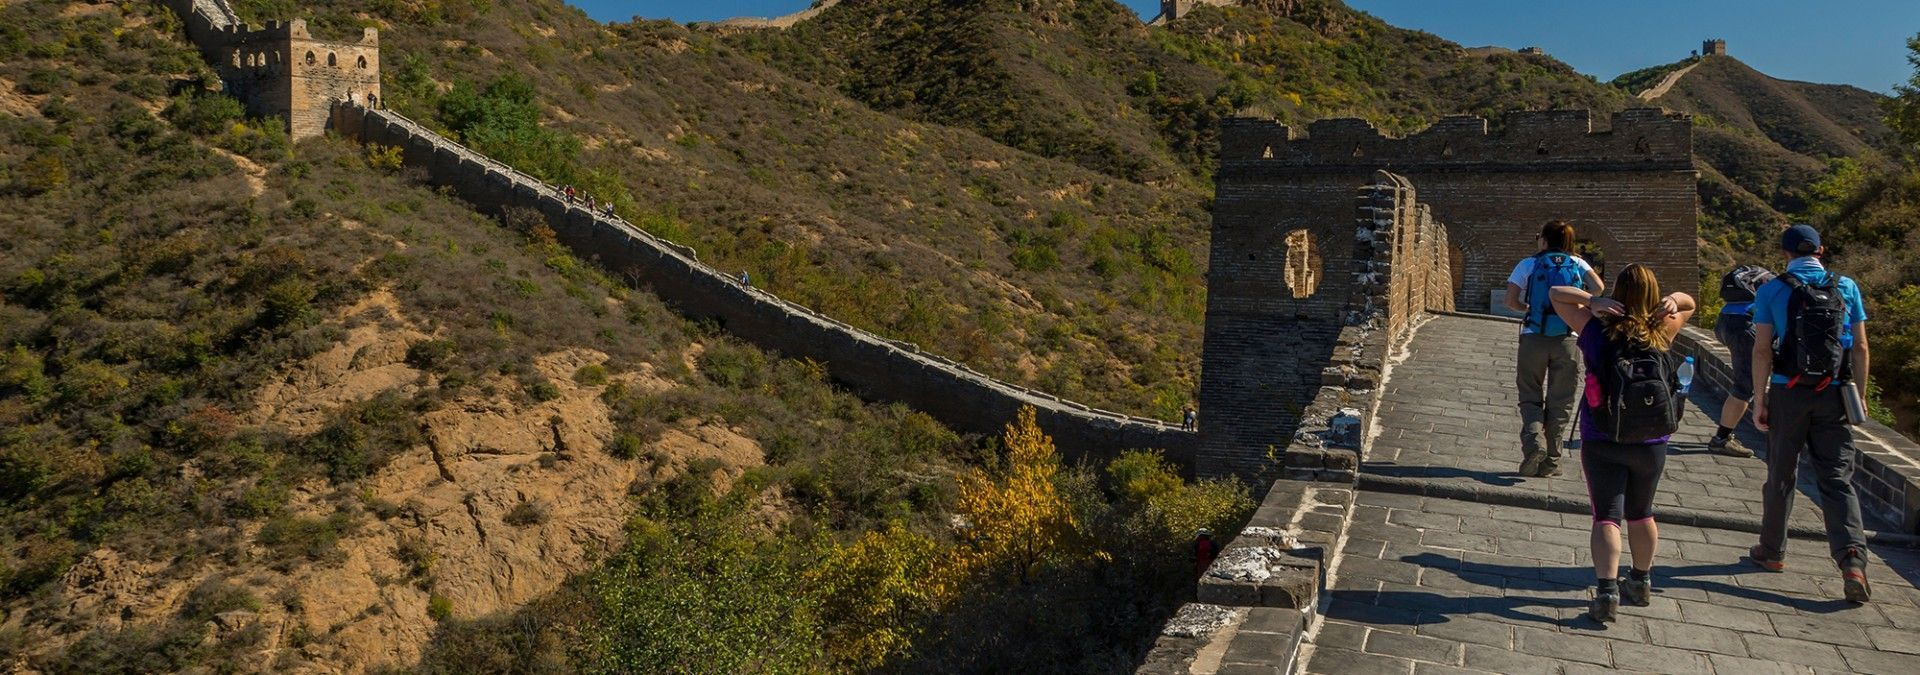 Great_Wall_of_China_View.jpg